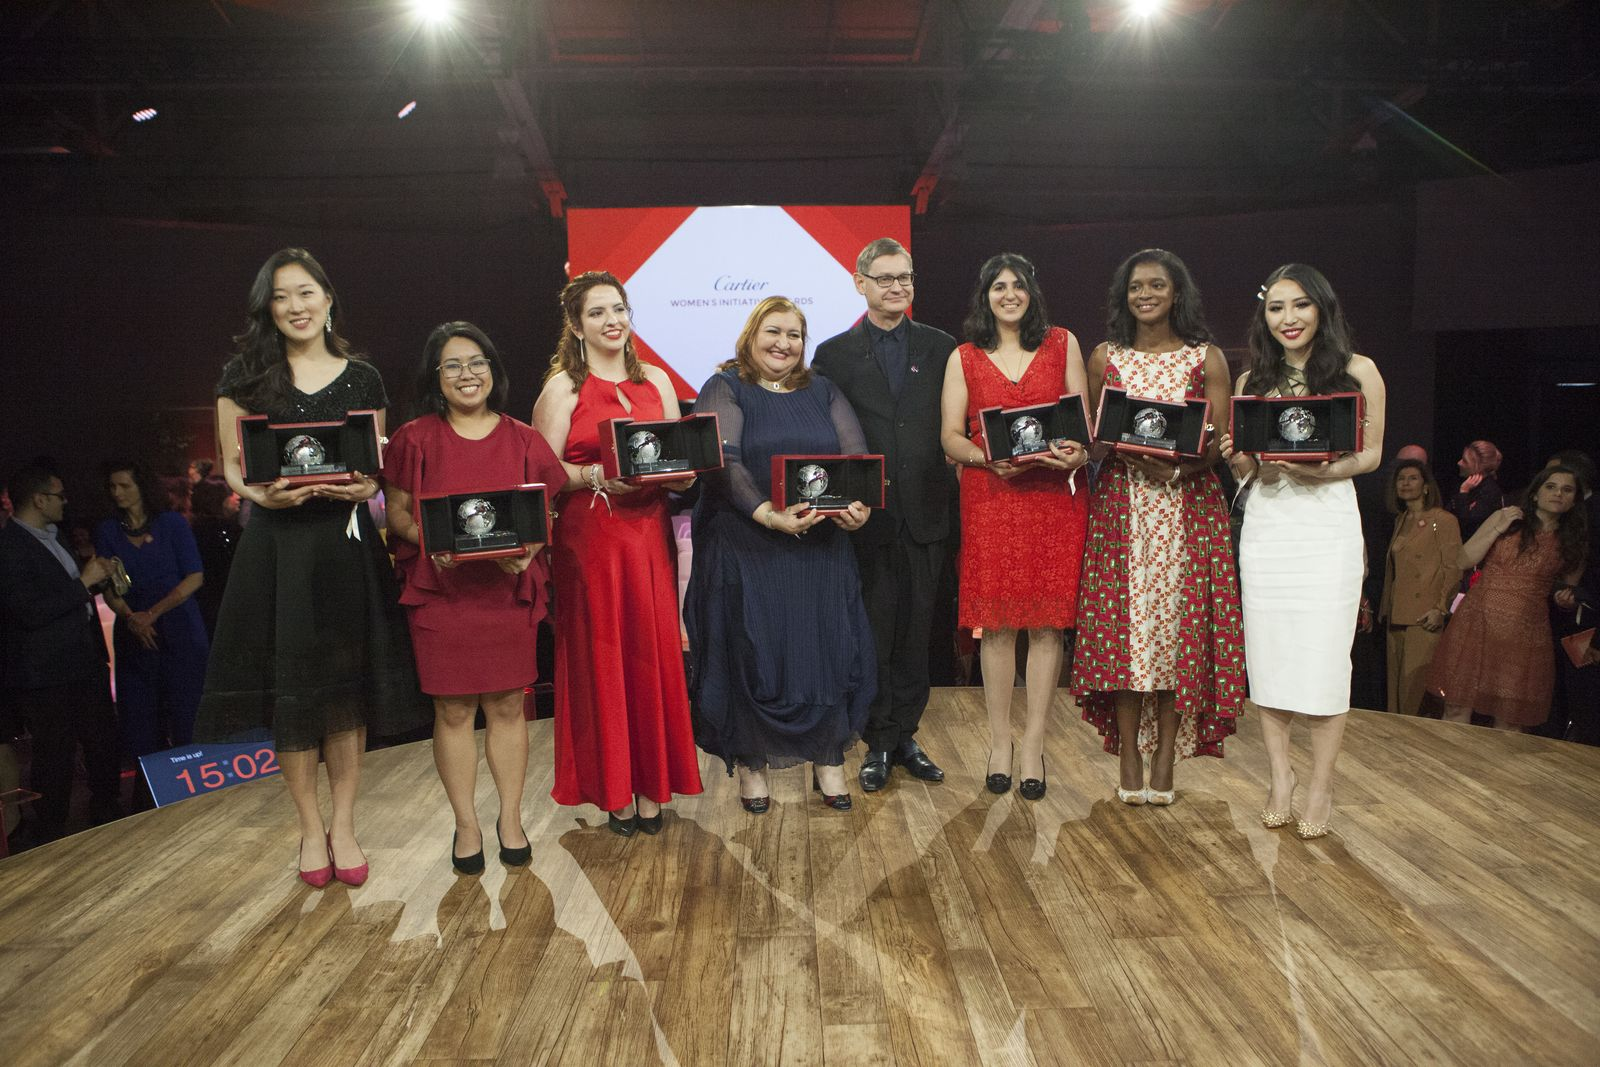 Cyrille Vigneron, CEO of Cartier International with Cartier's Women Initiative Awards 2019 laureates